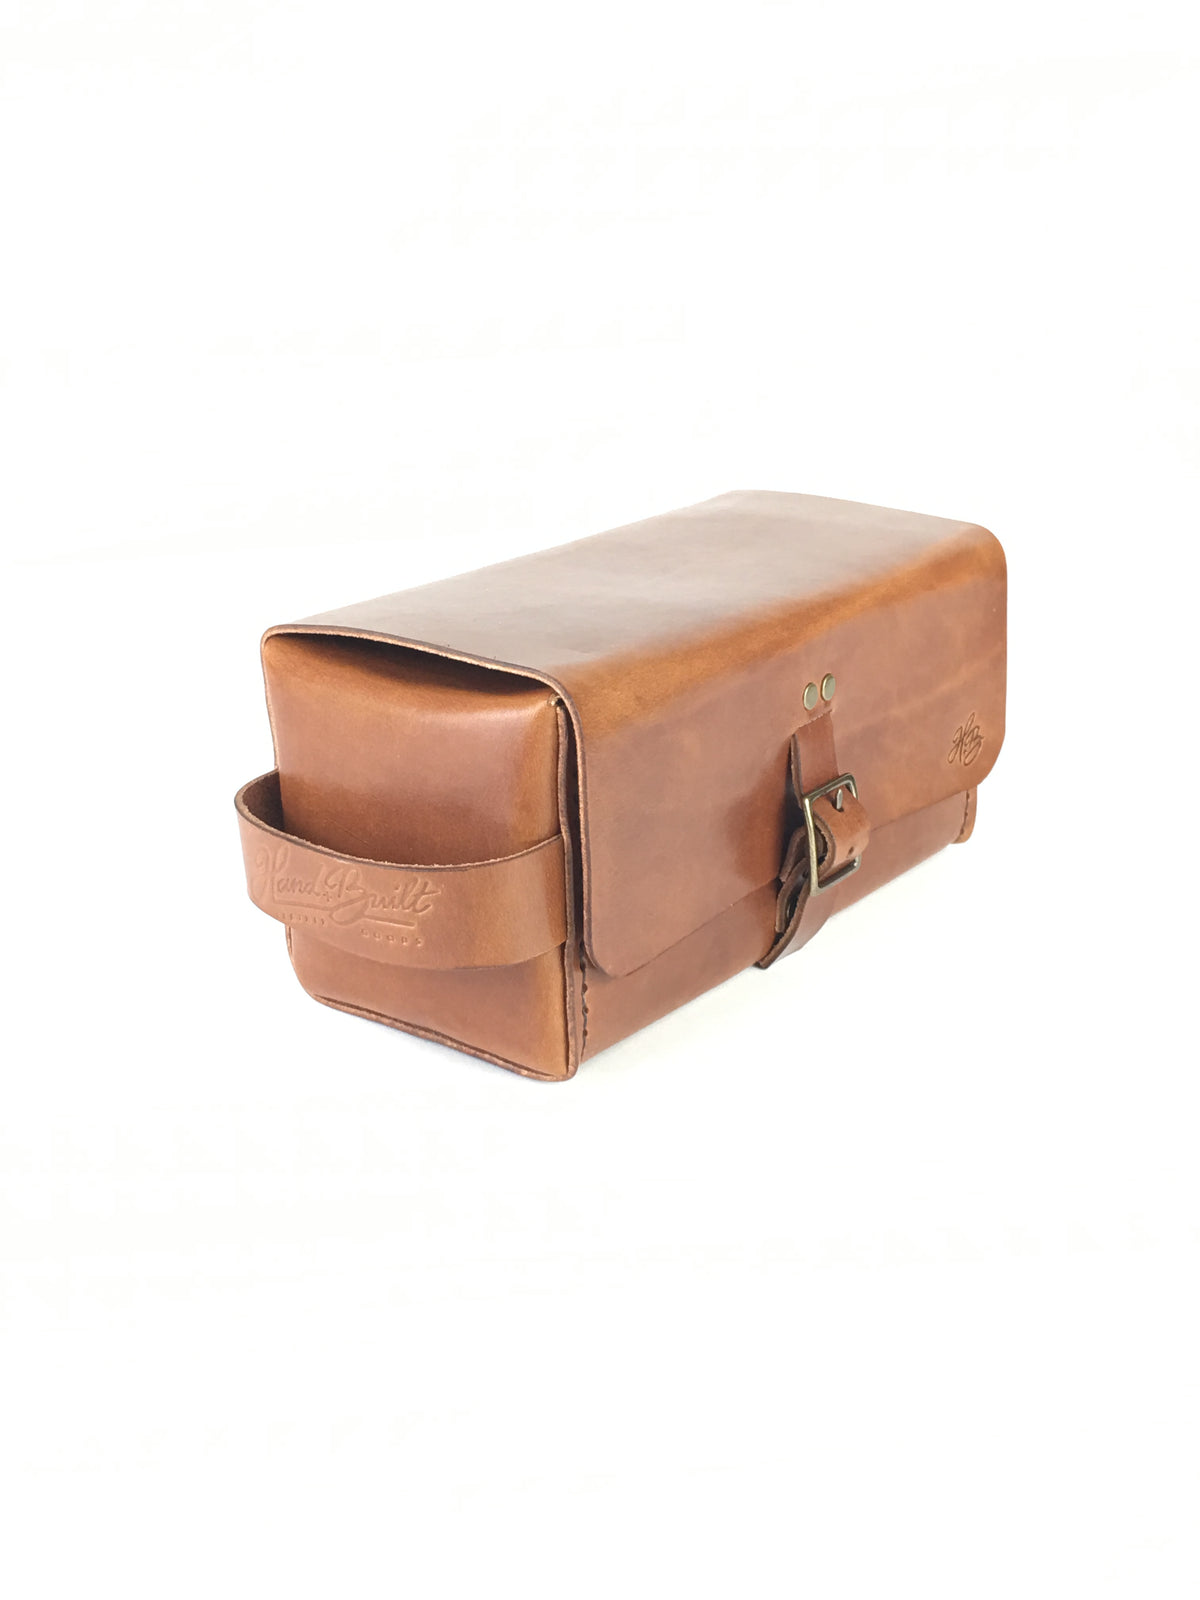 H+B SIMPLE DOPP KIT | BUCK BROWN LEATHER